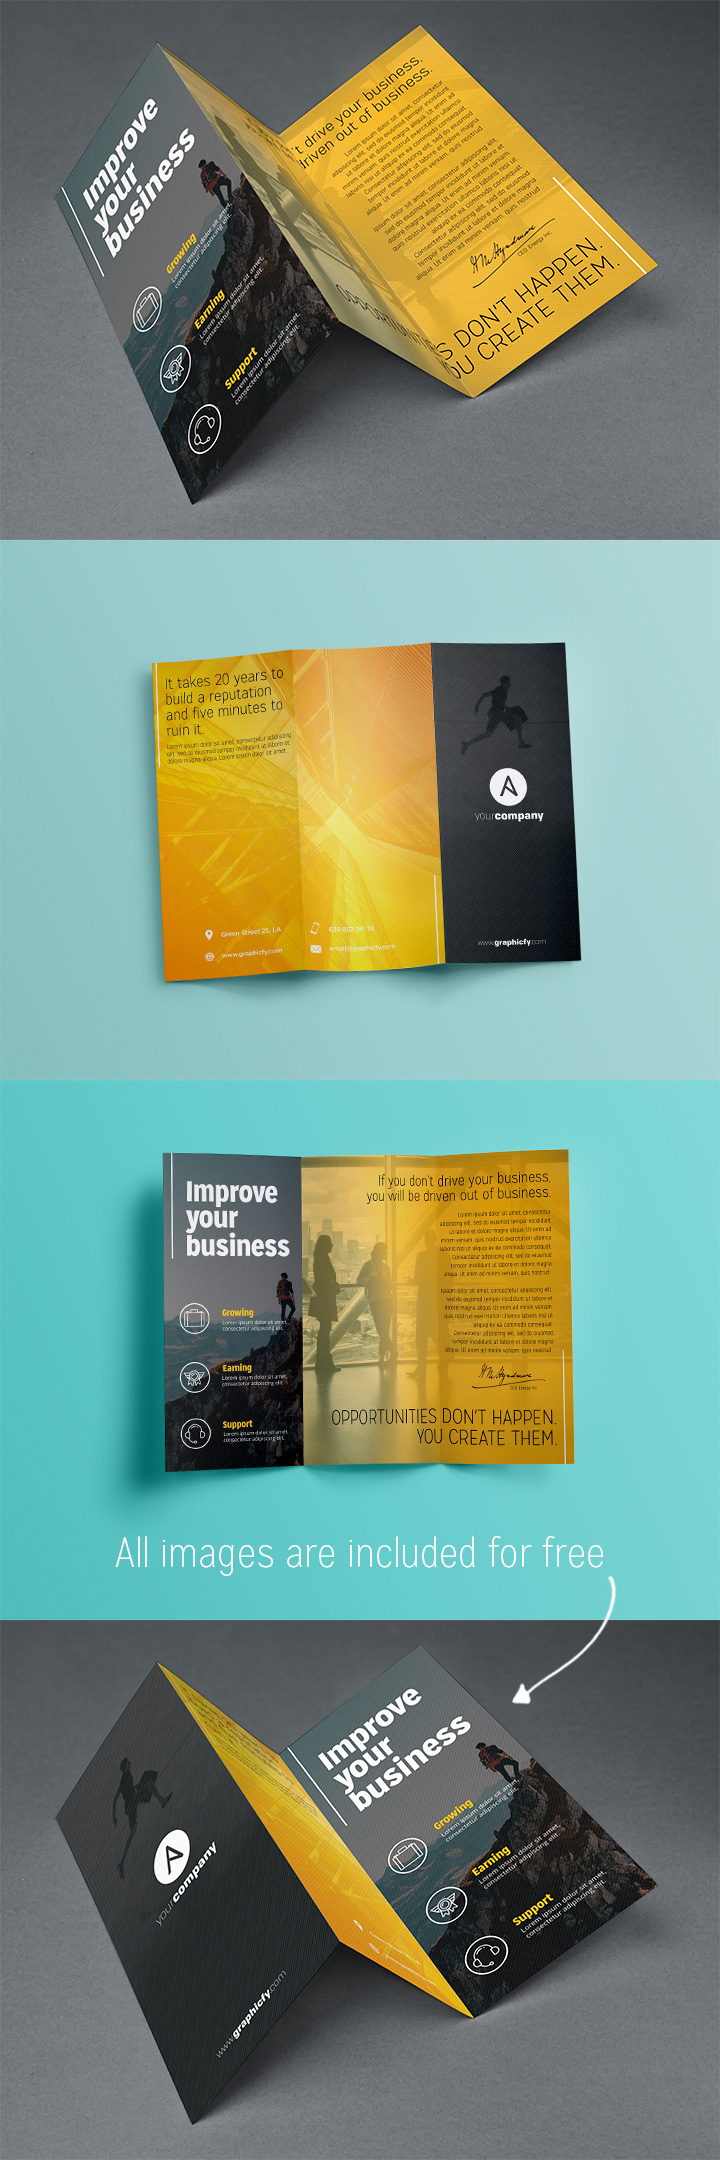 Tri fold brochure template psd brochure templates for Tri fold brochure template photoshop free